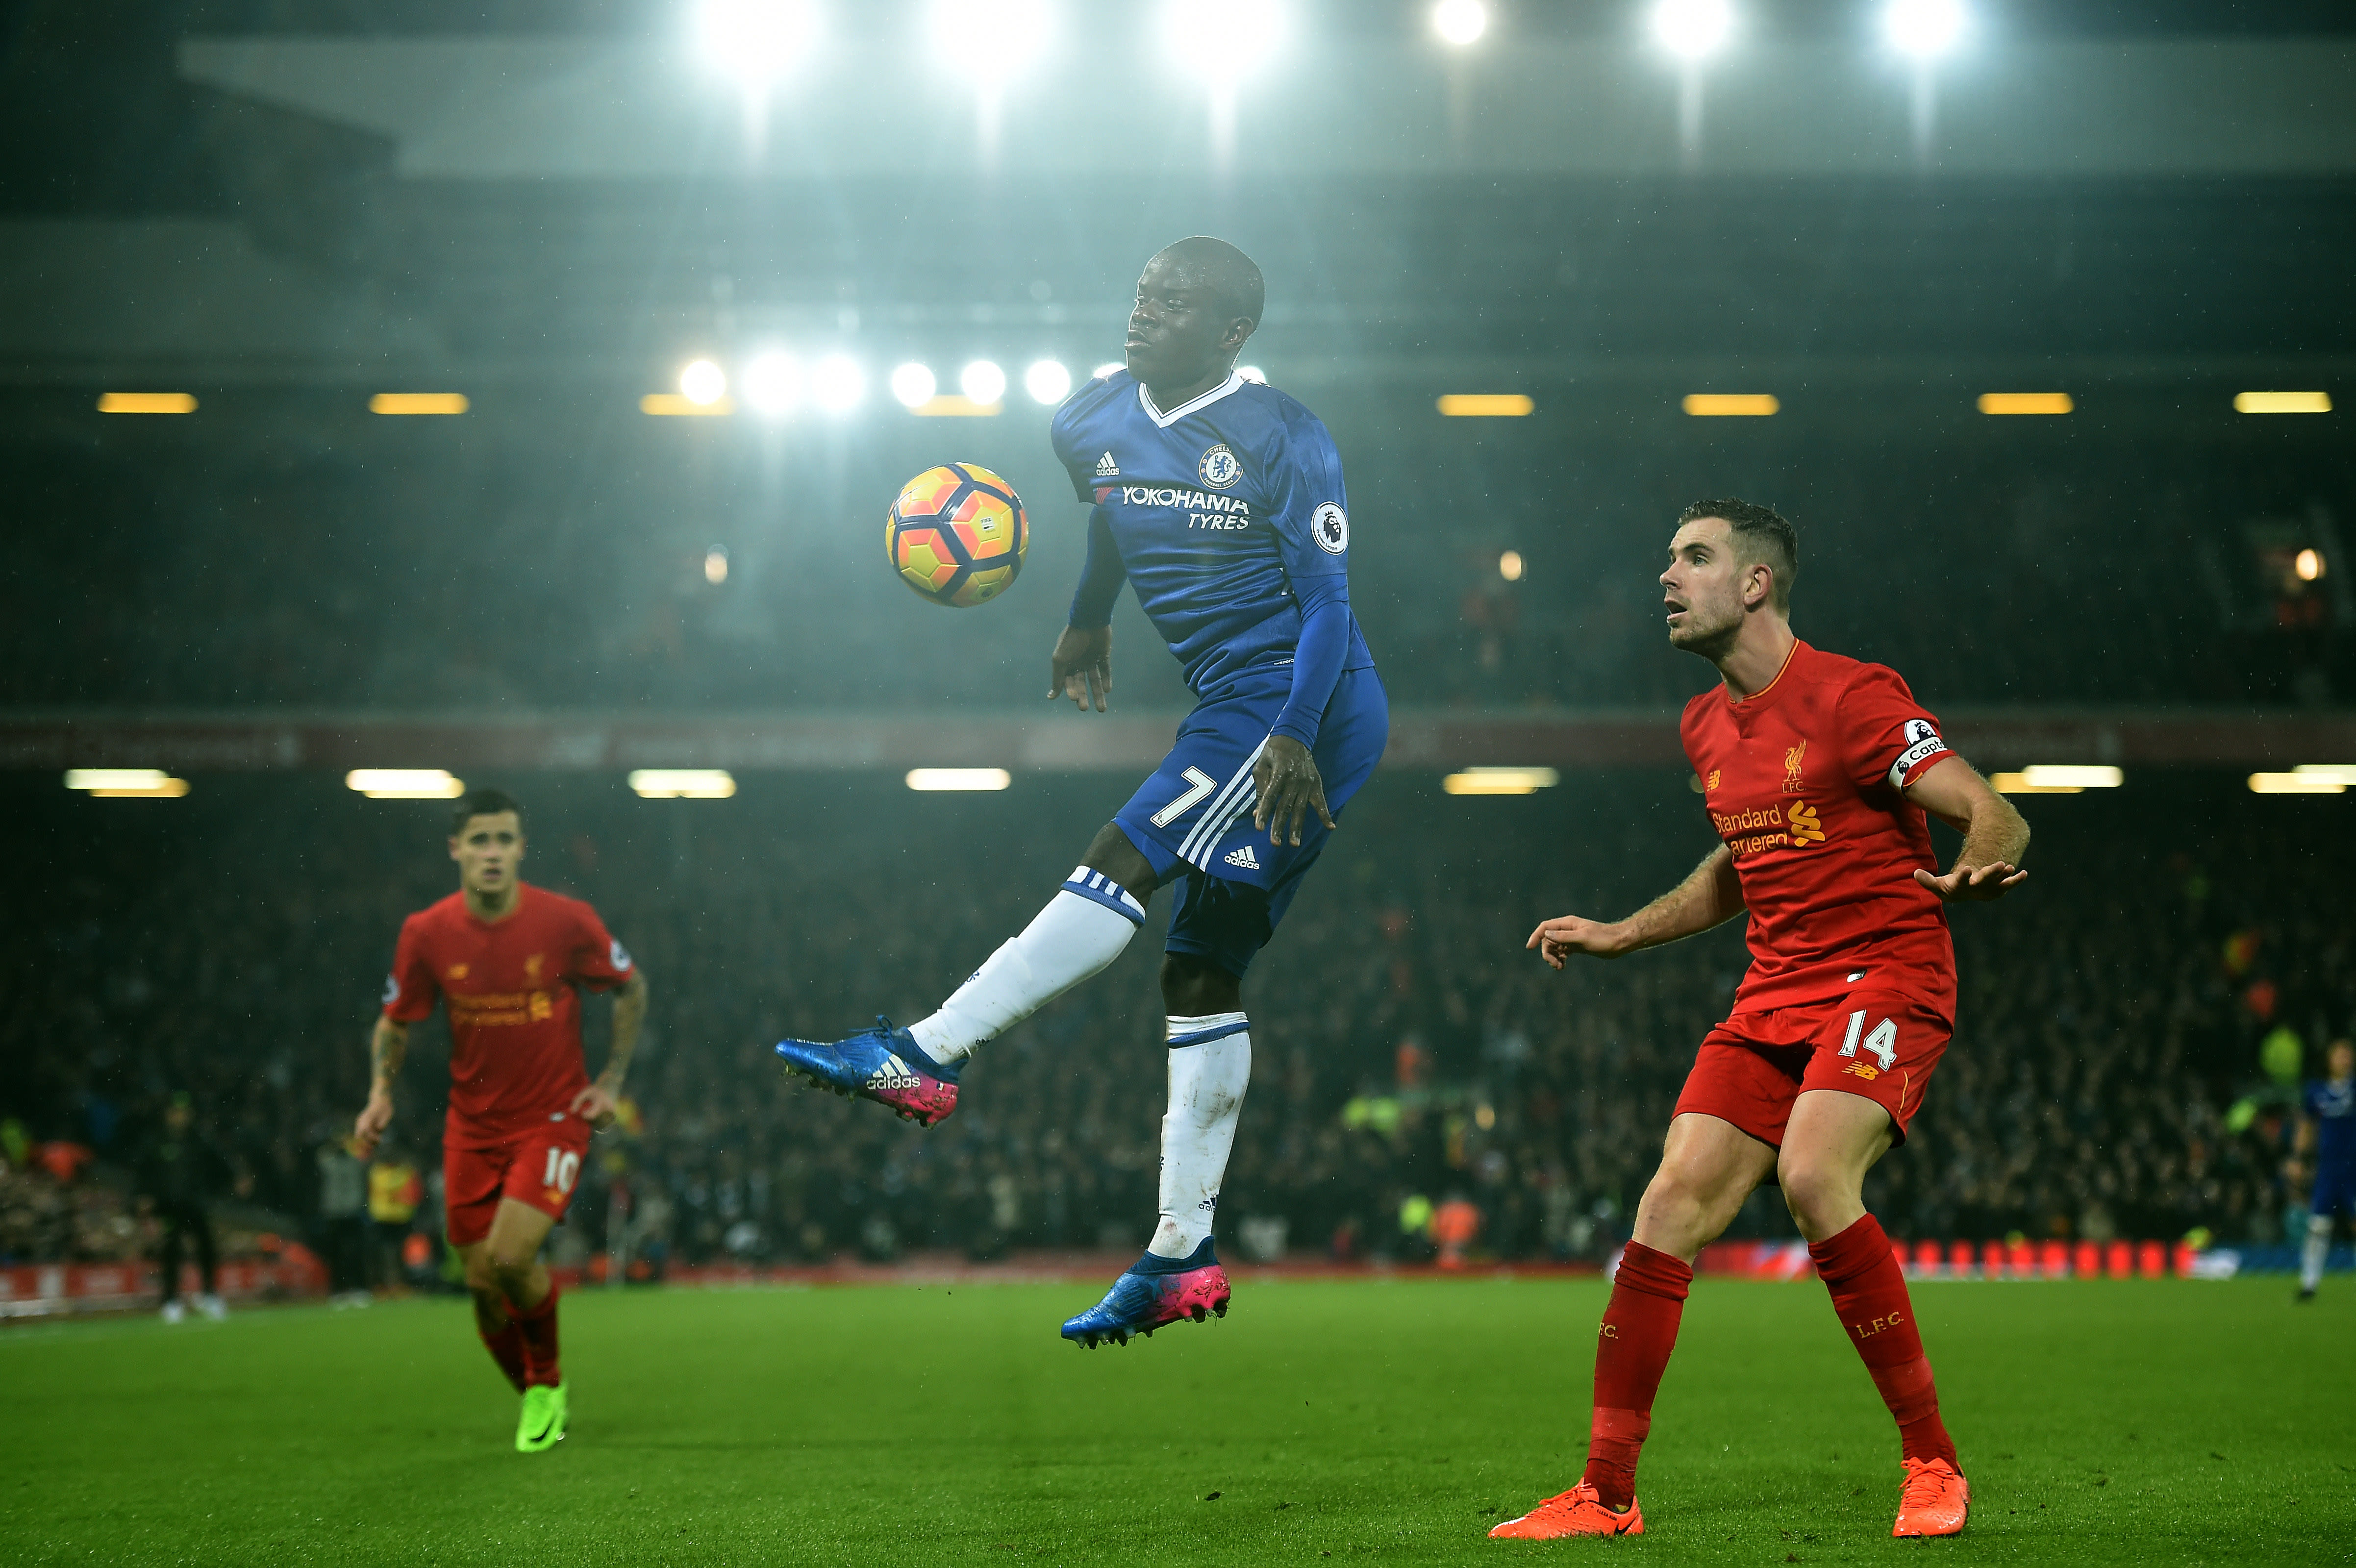 Kante in action, controlling a high ball at Anfield